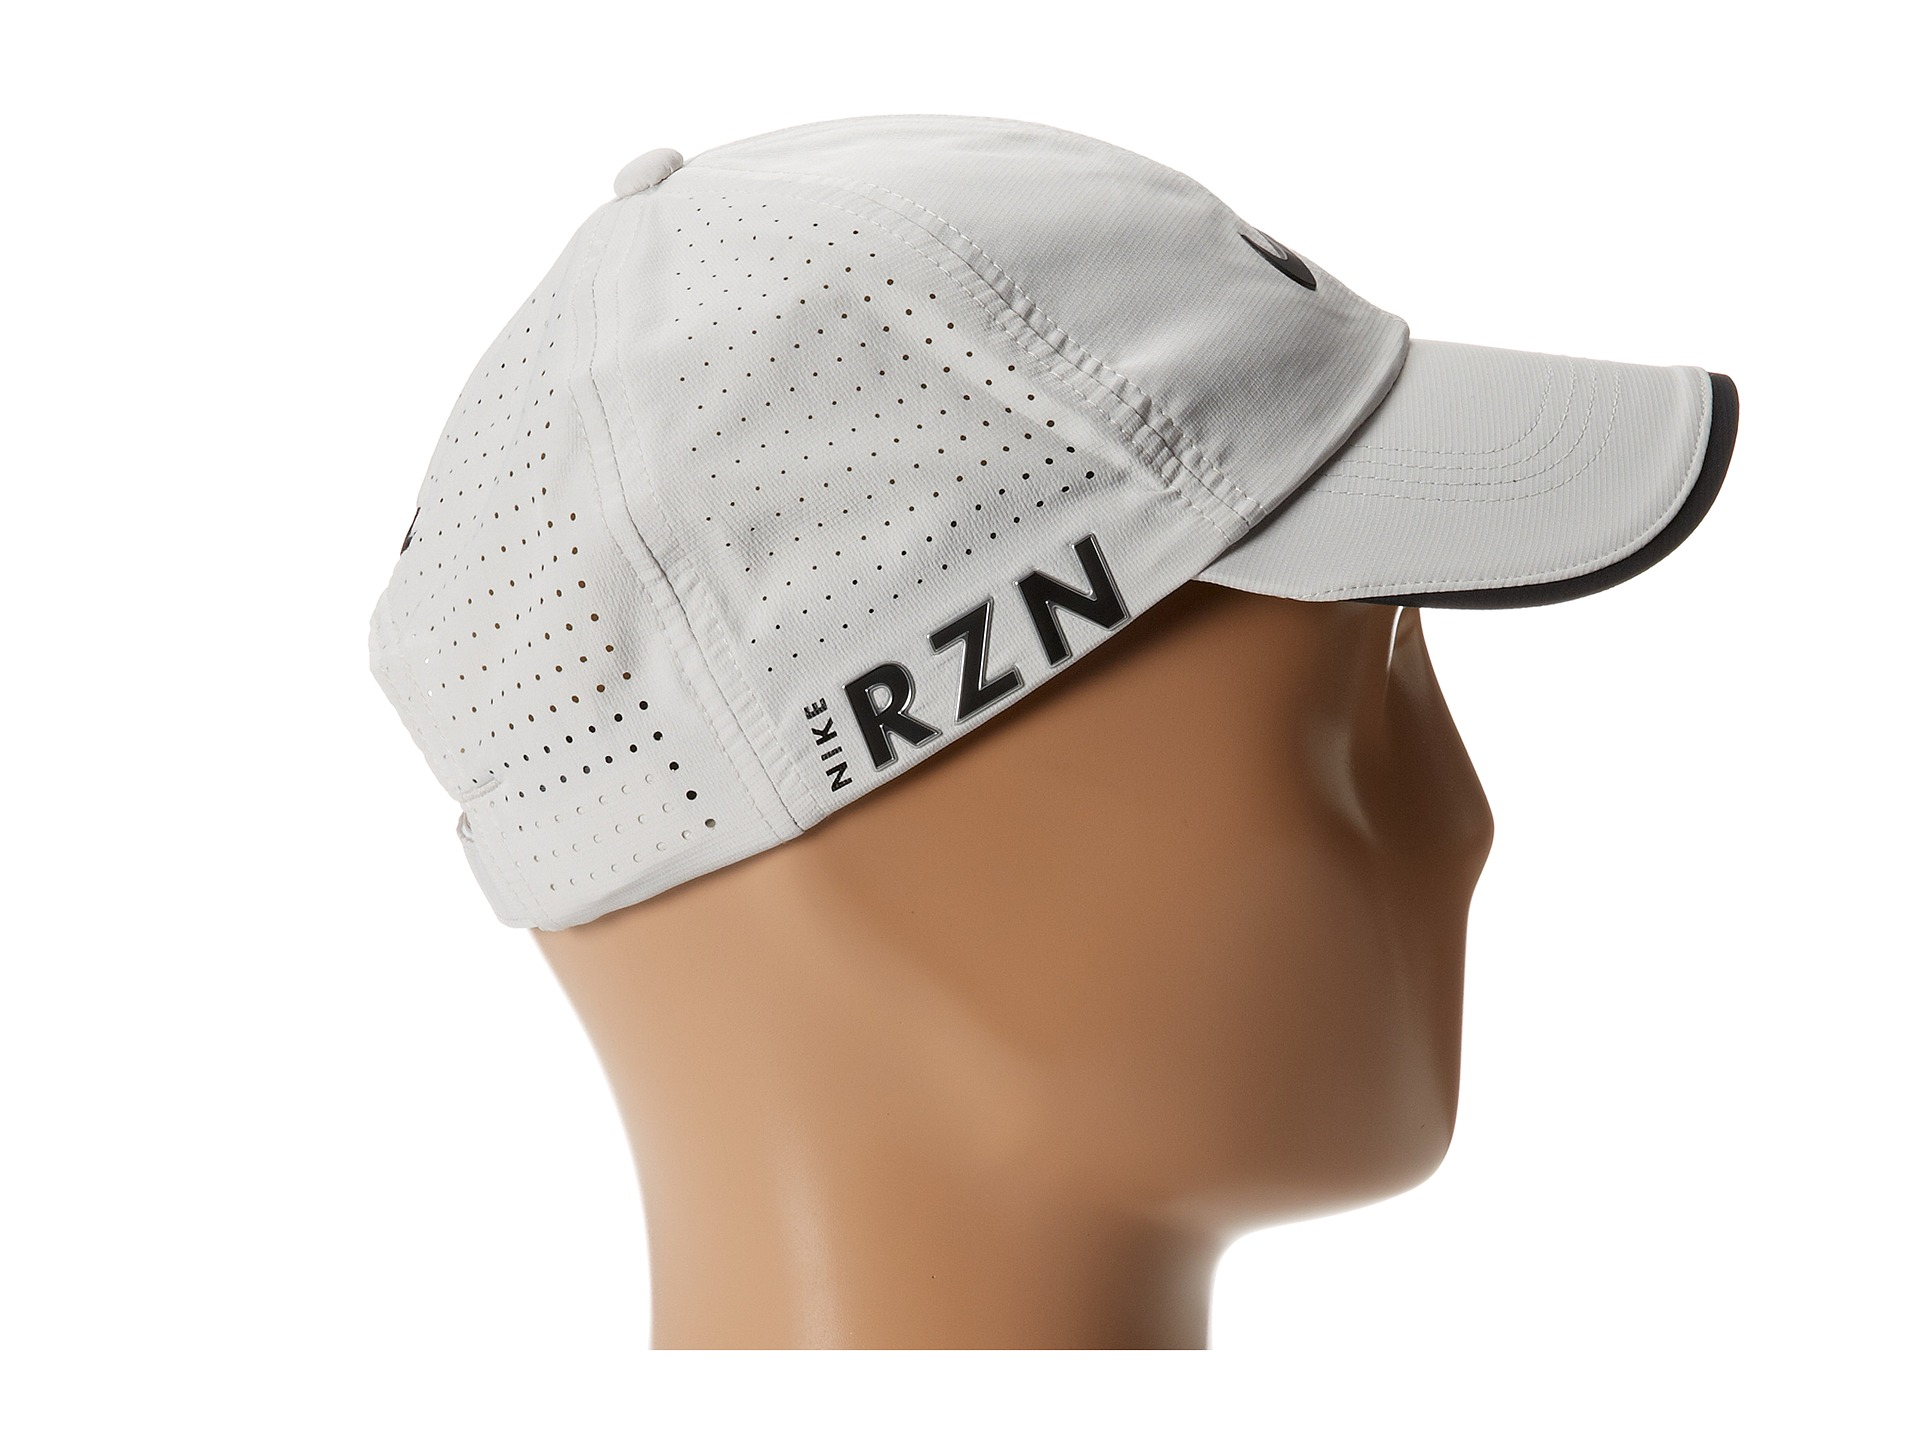 Lyst - Nike Tour Perforated Cap in White for Men e6d876ce0c7